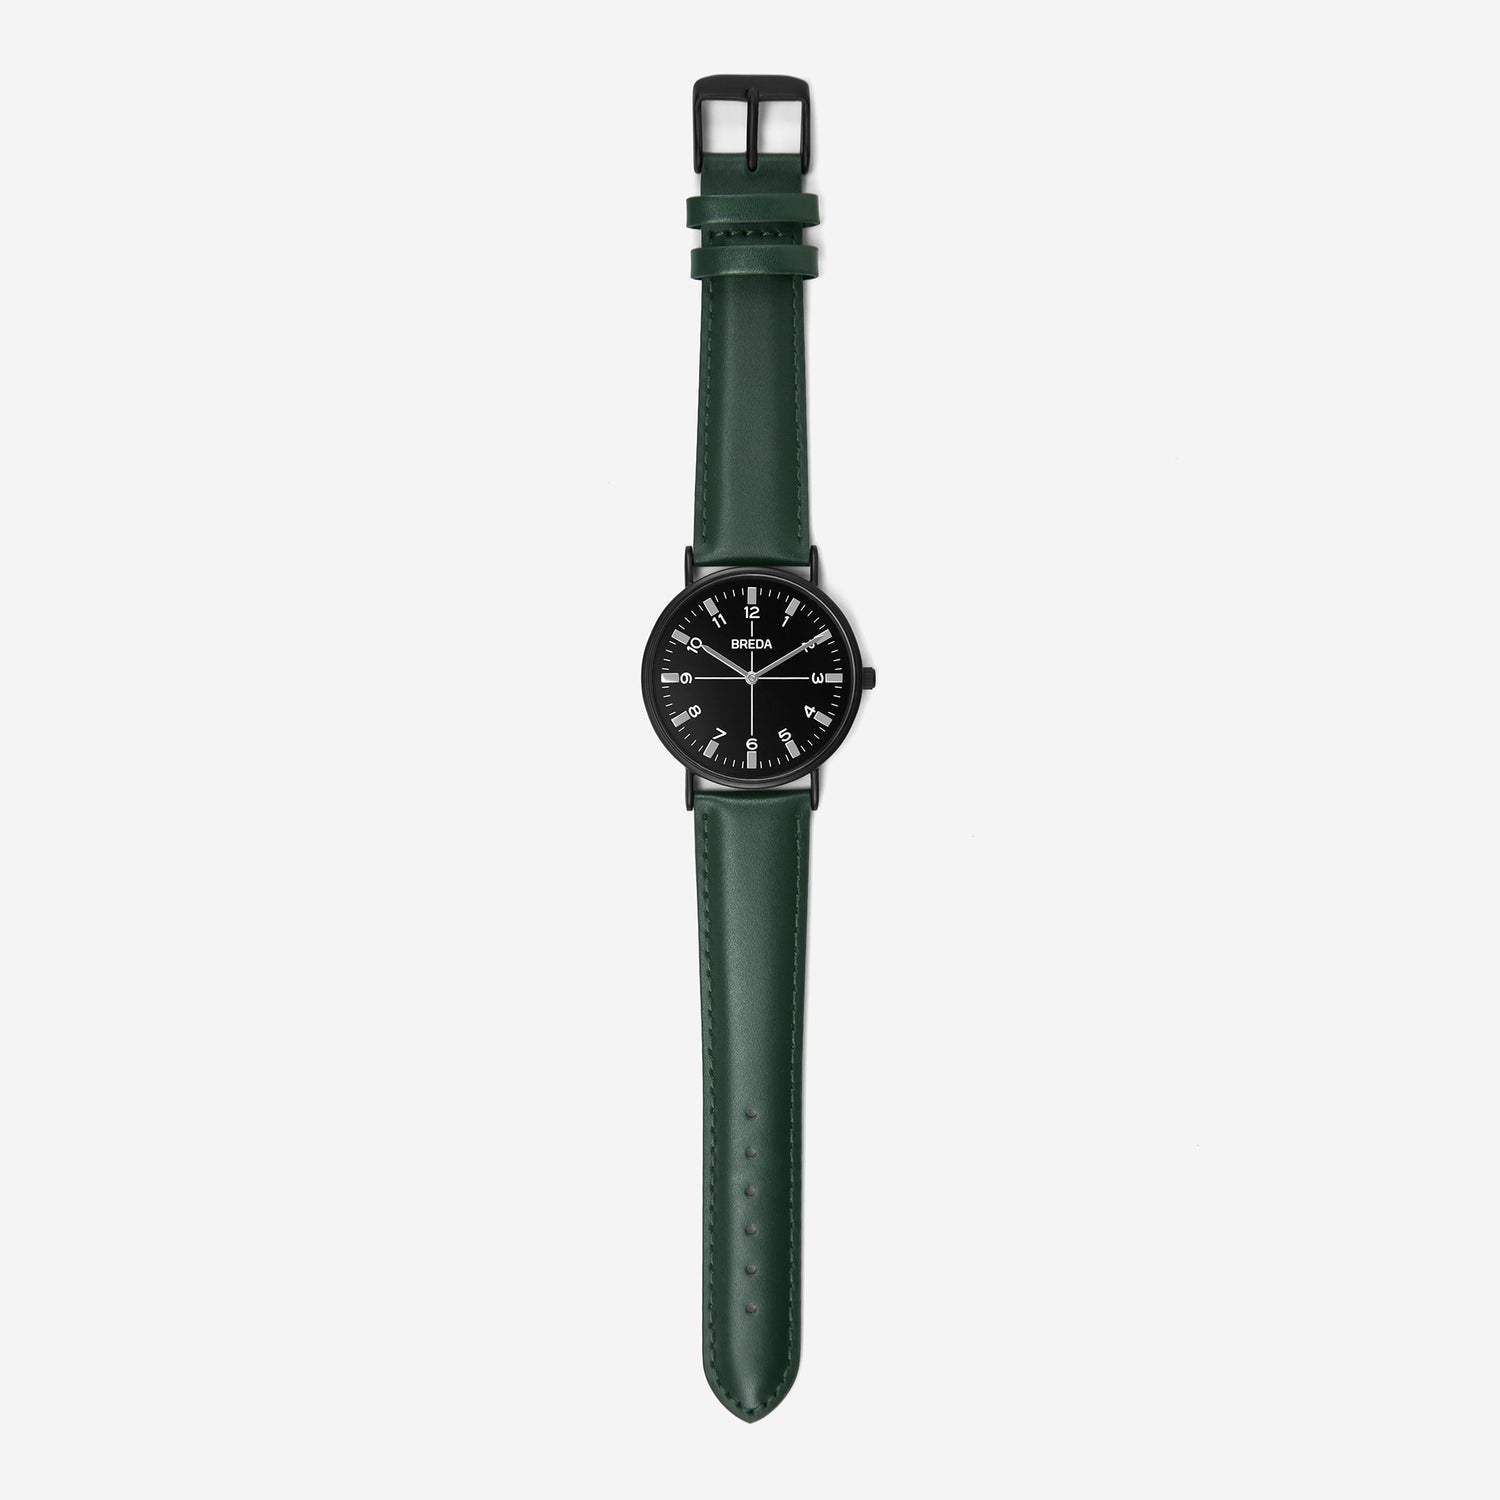 BREDA-Belmont-1646j-Black-Green-Watch-Long